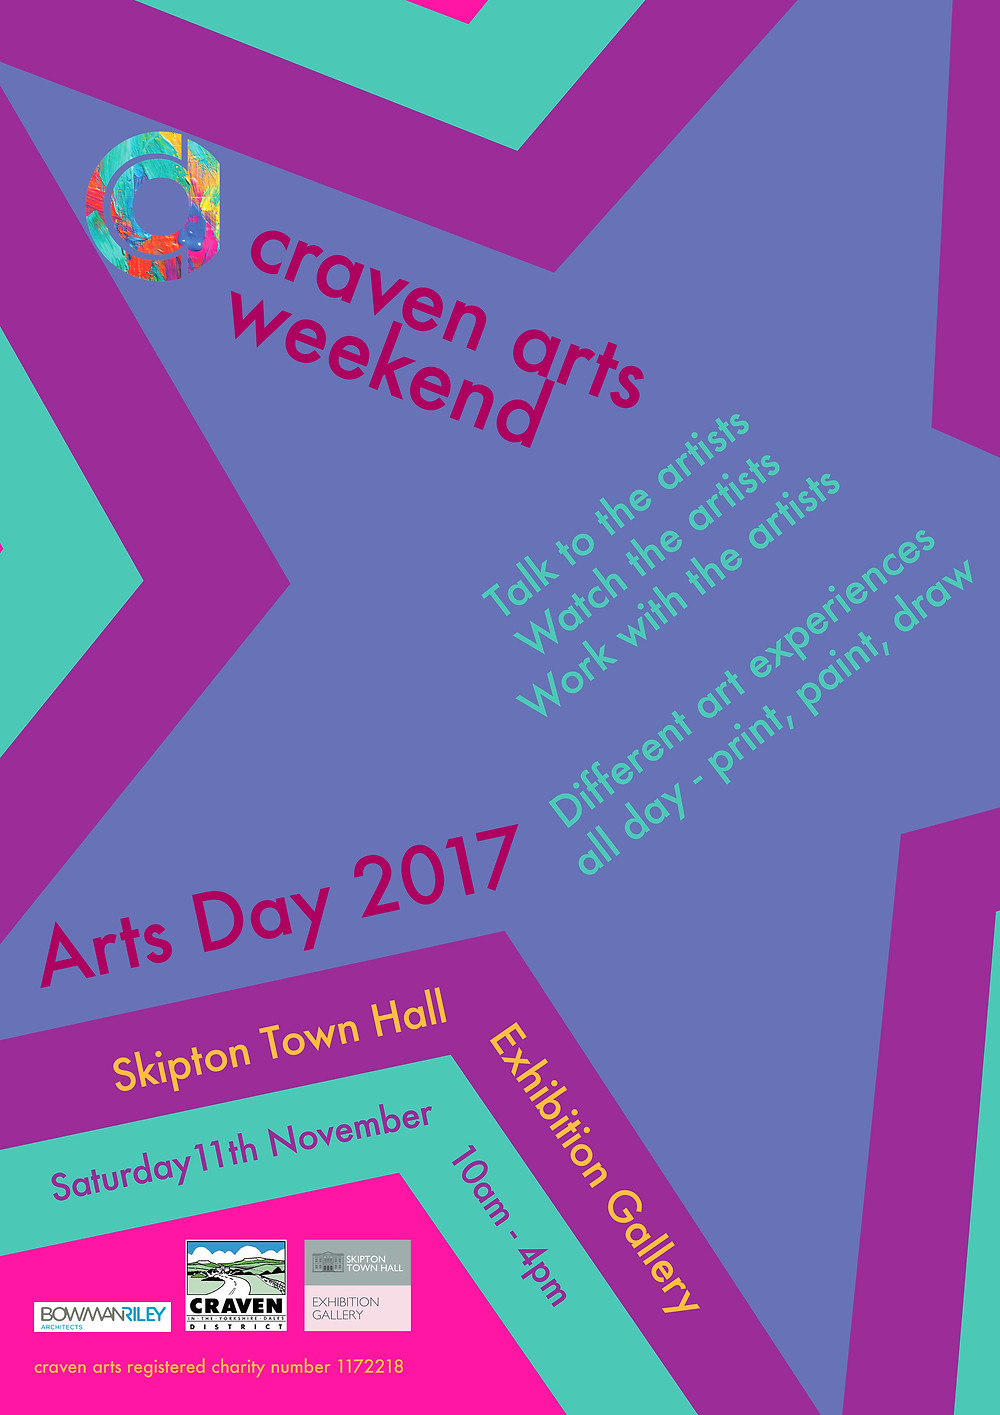 Details on craven arts Arts Days 2017 at Skipton Town Hall, 11 November 2017 between 10am and 4pm